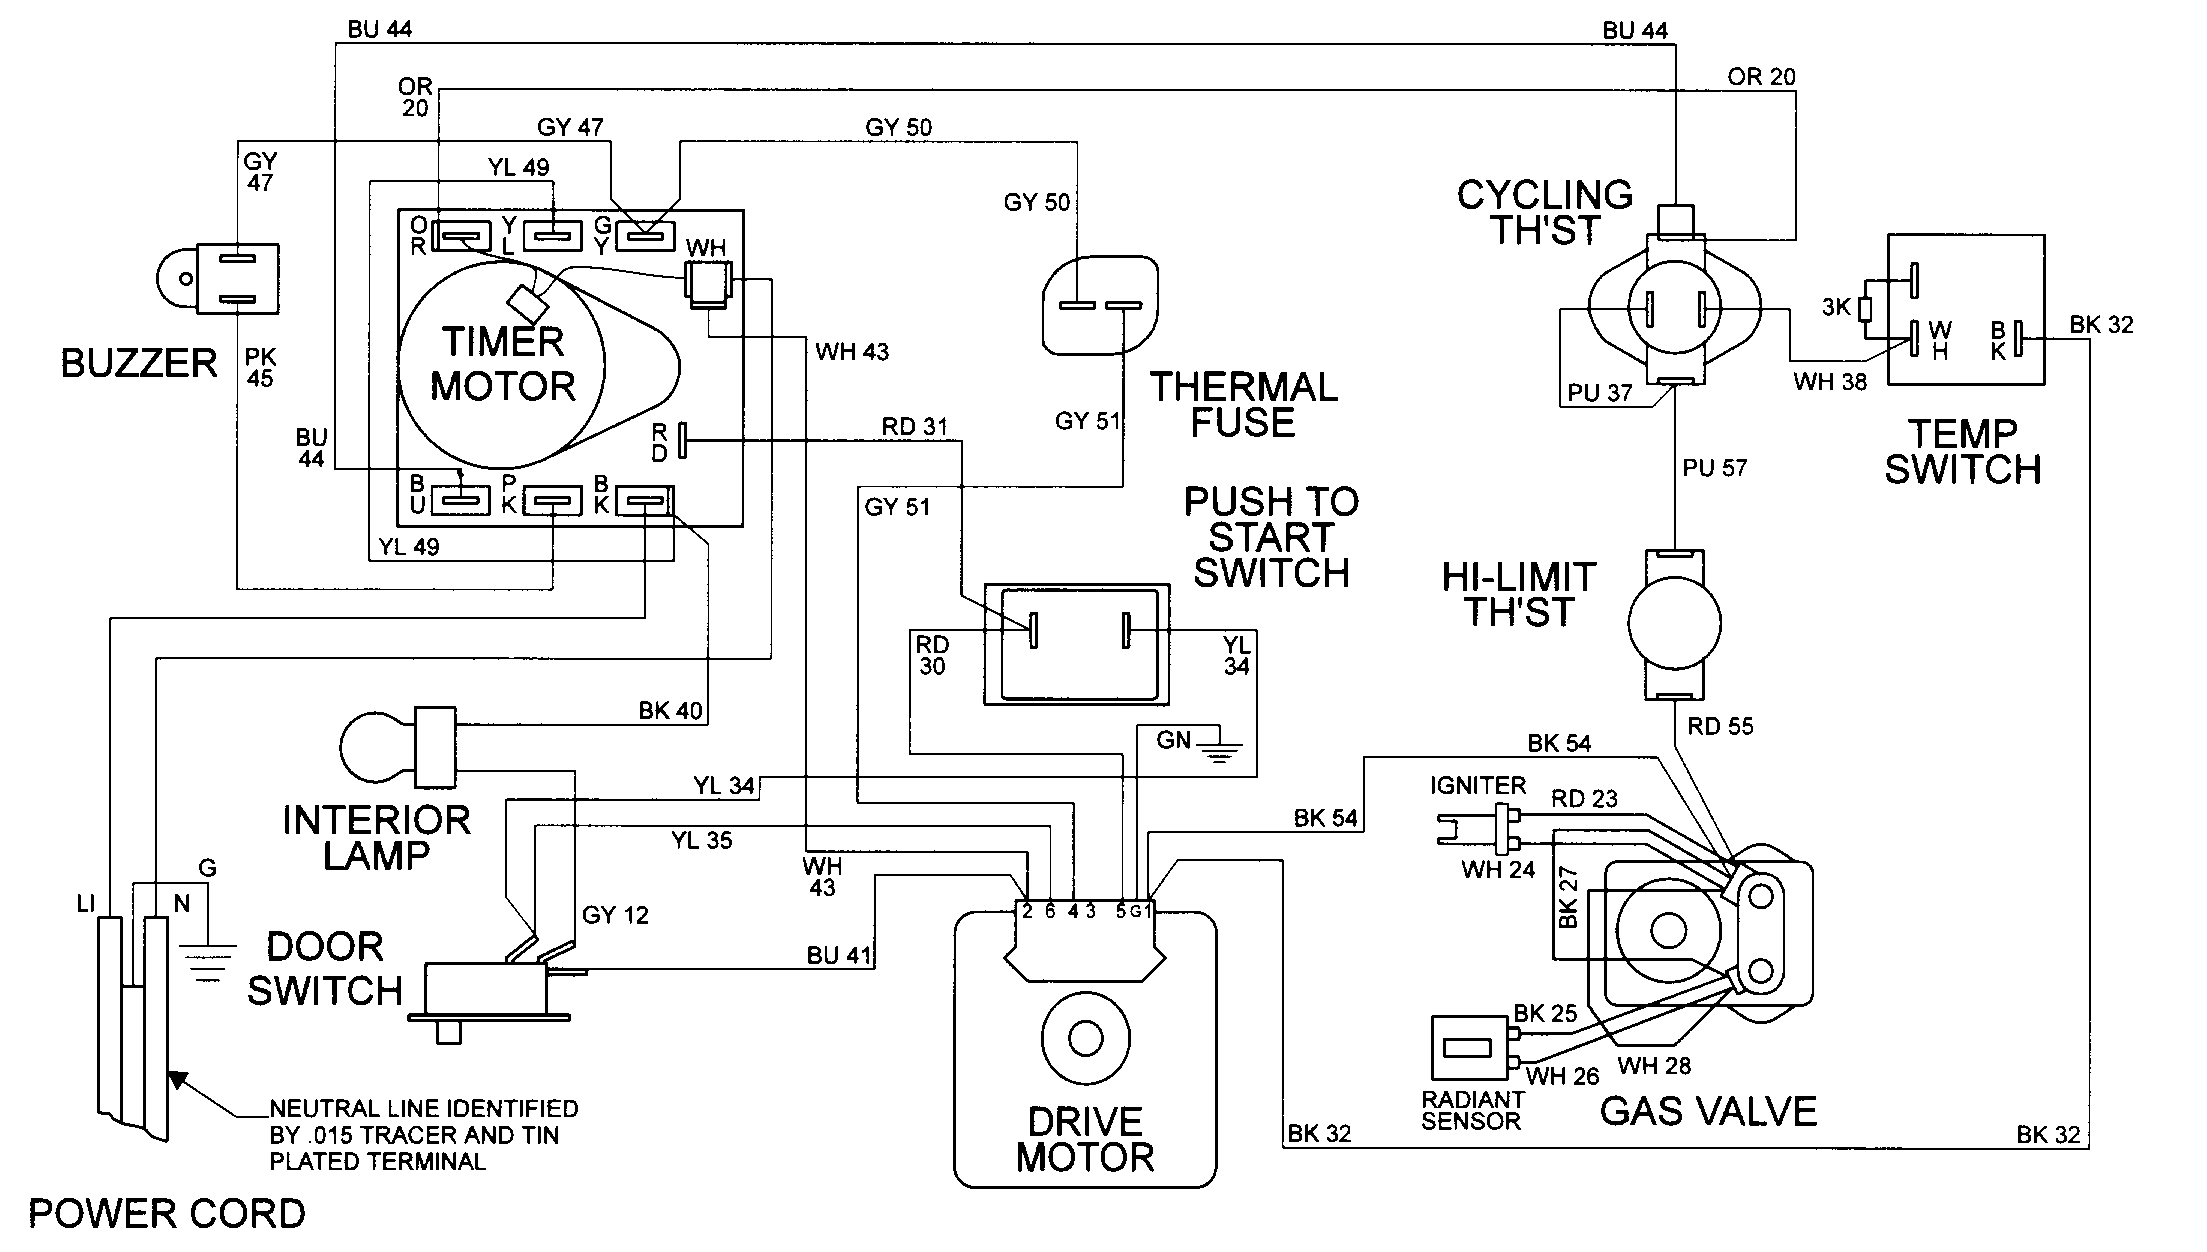 electric dryer wiring diagram apache 100 quad kenmore washer wire harness get free image about